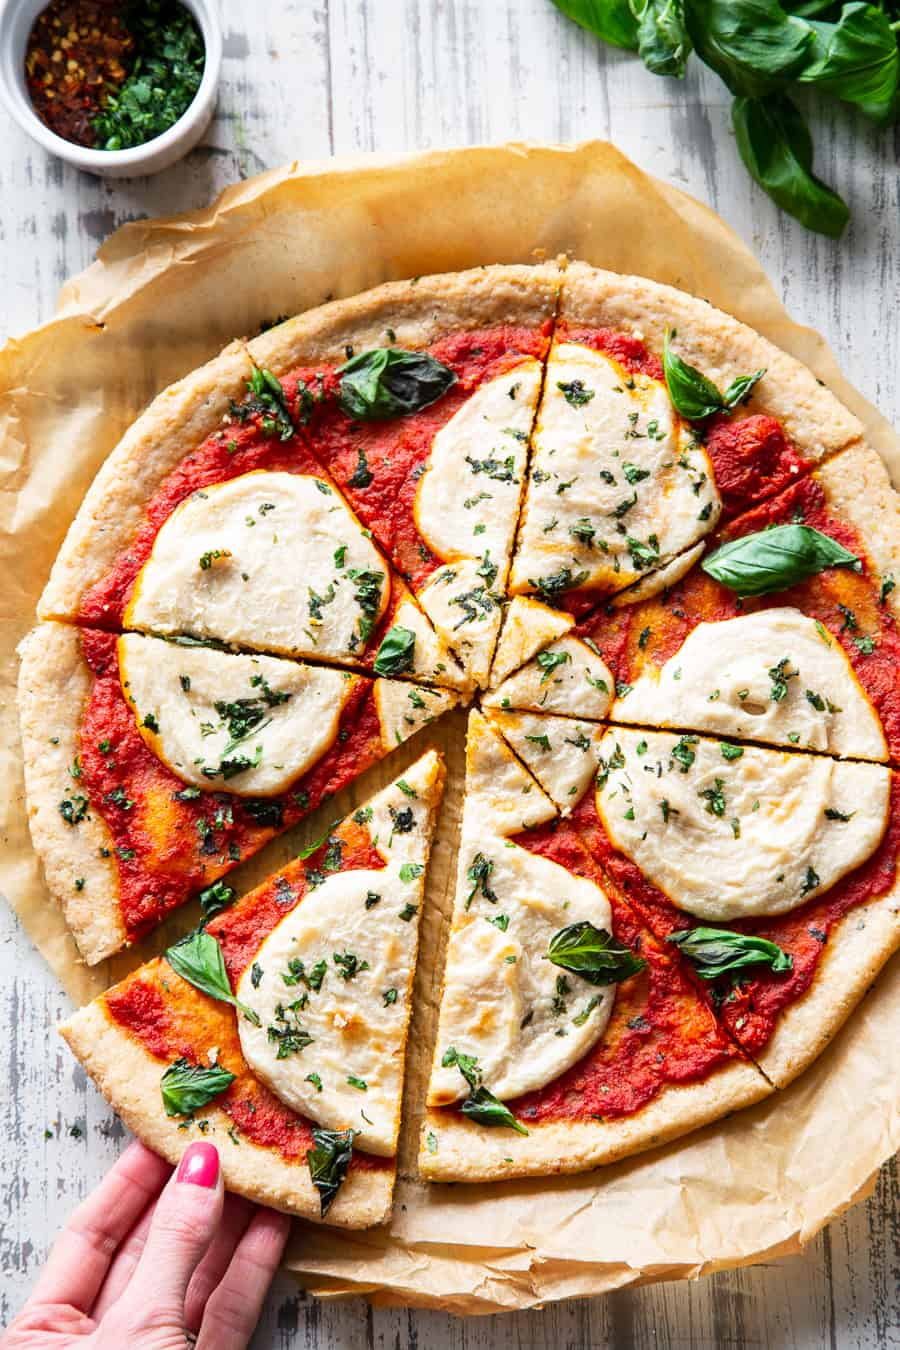 The Best Paleo Vegan Pizza Gluten Free Dairy Free